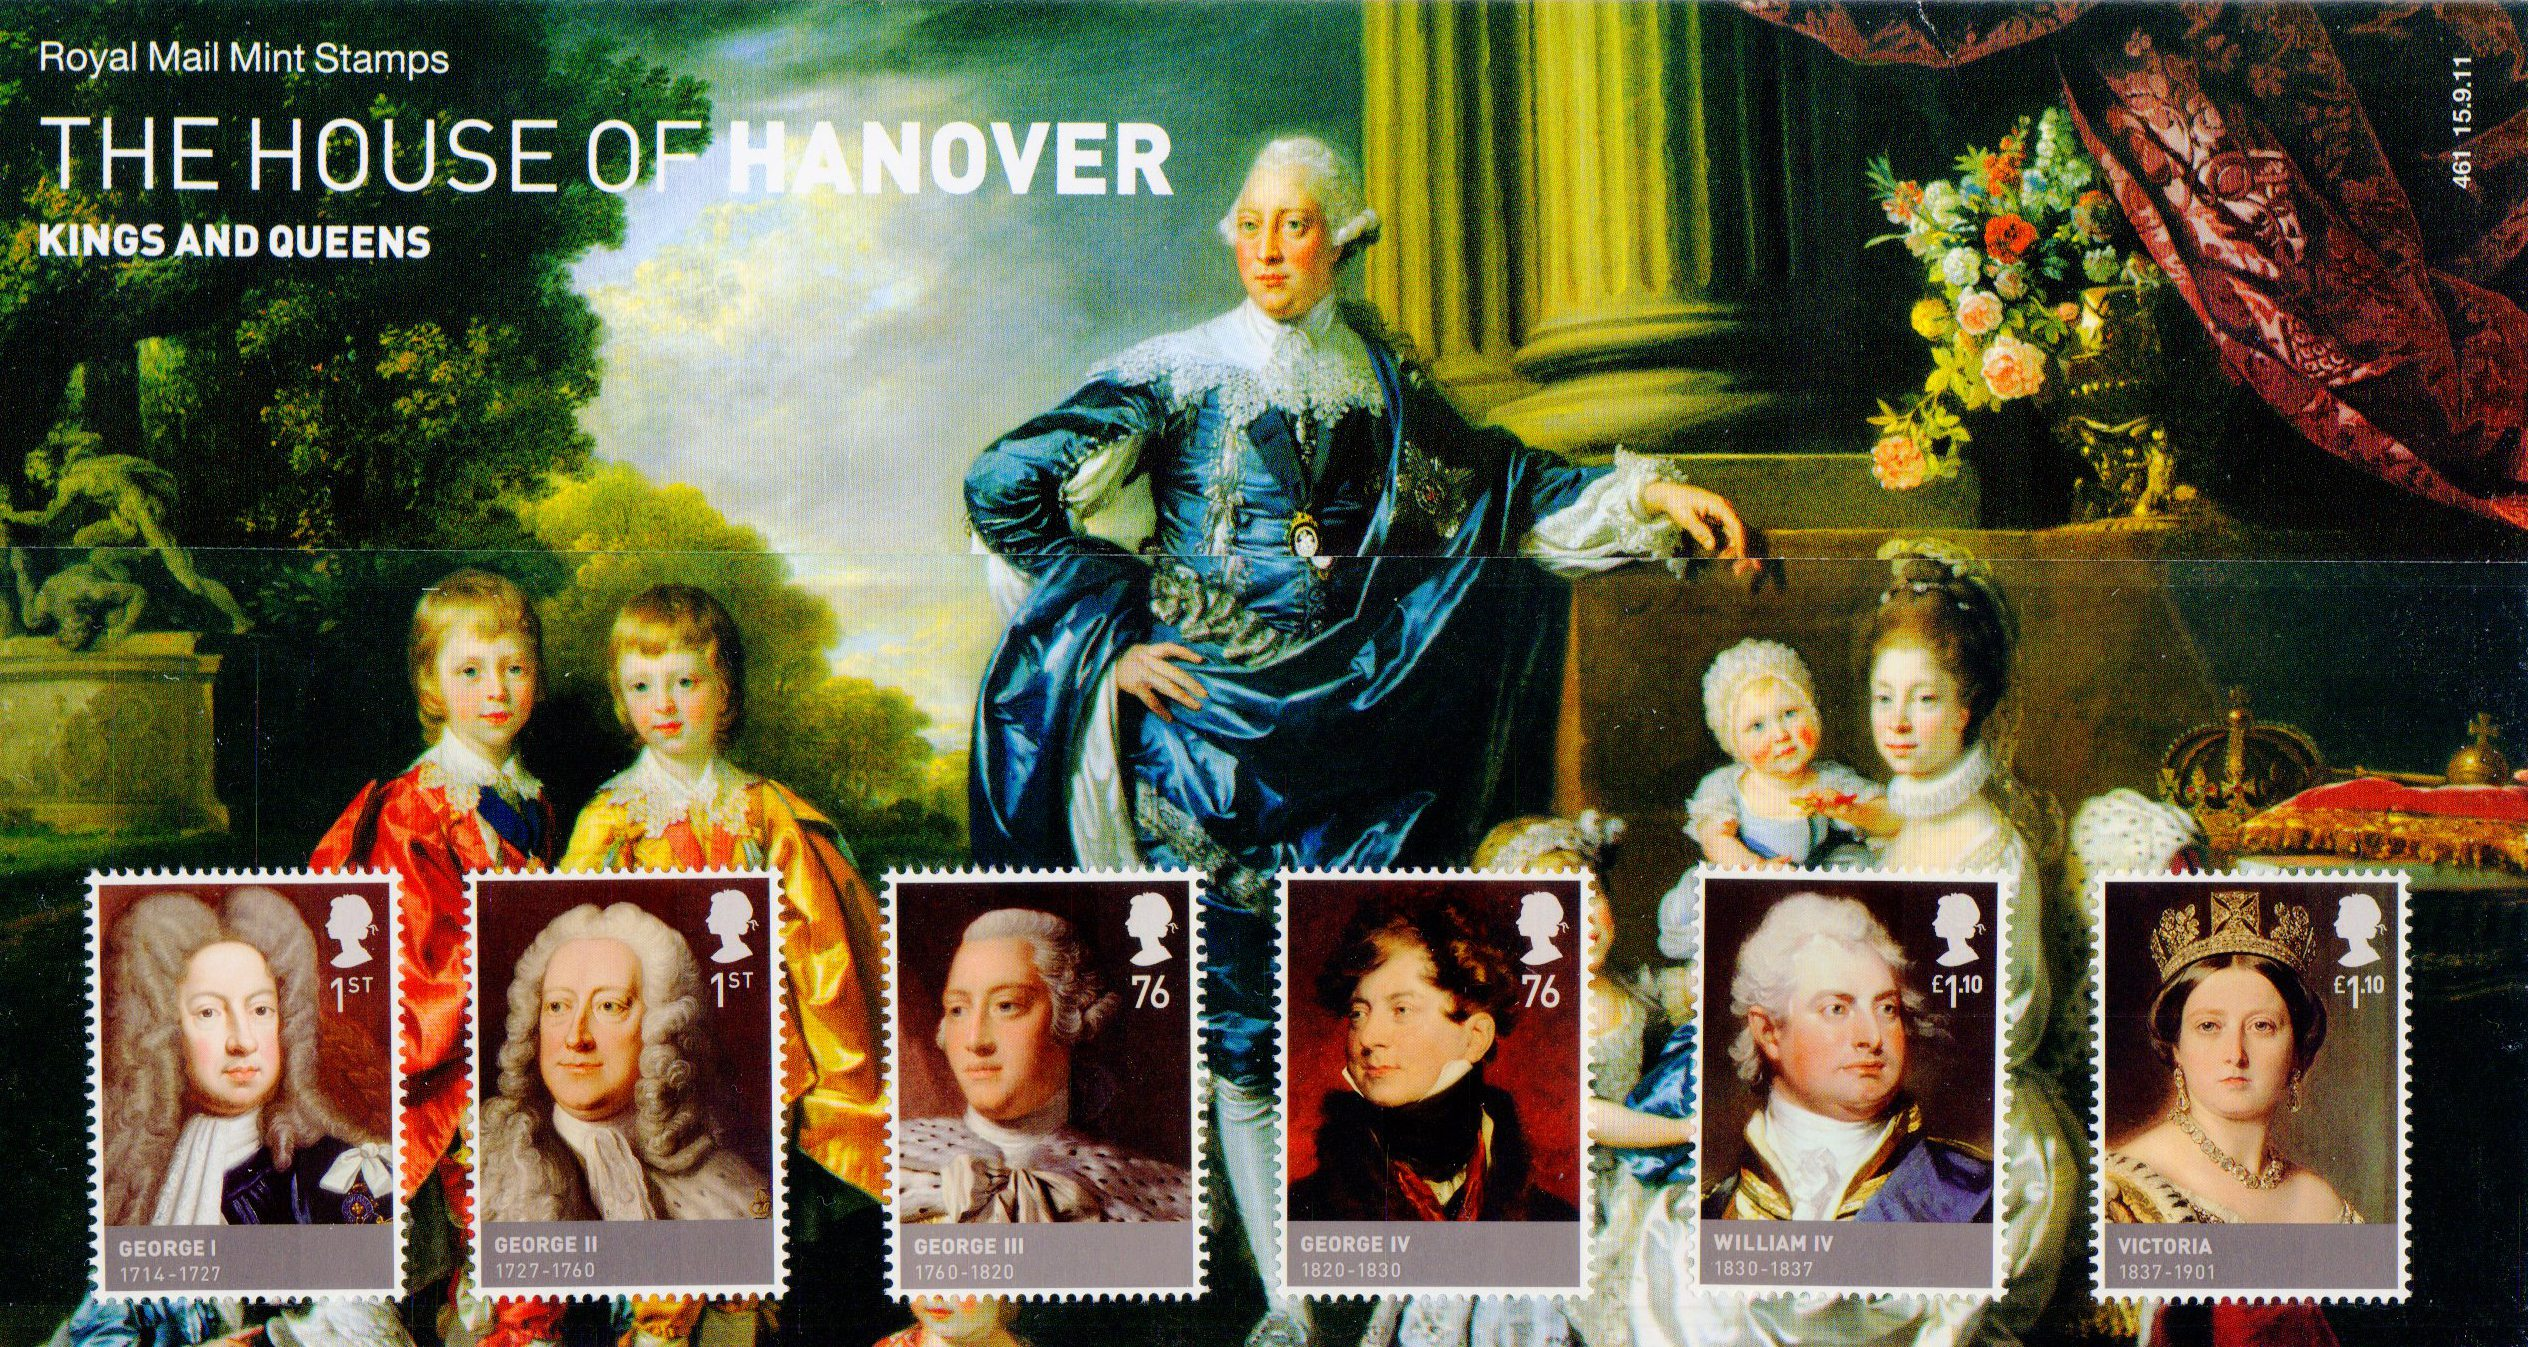 Presentation Pack with 6 images of monarchs from the House of Hanover